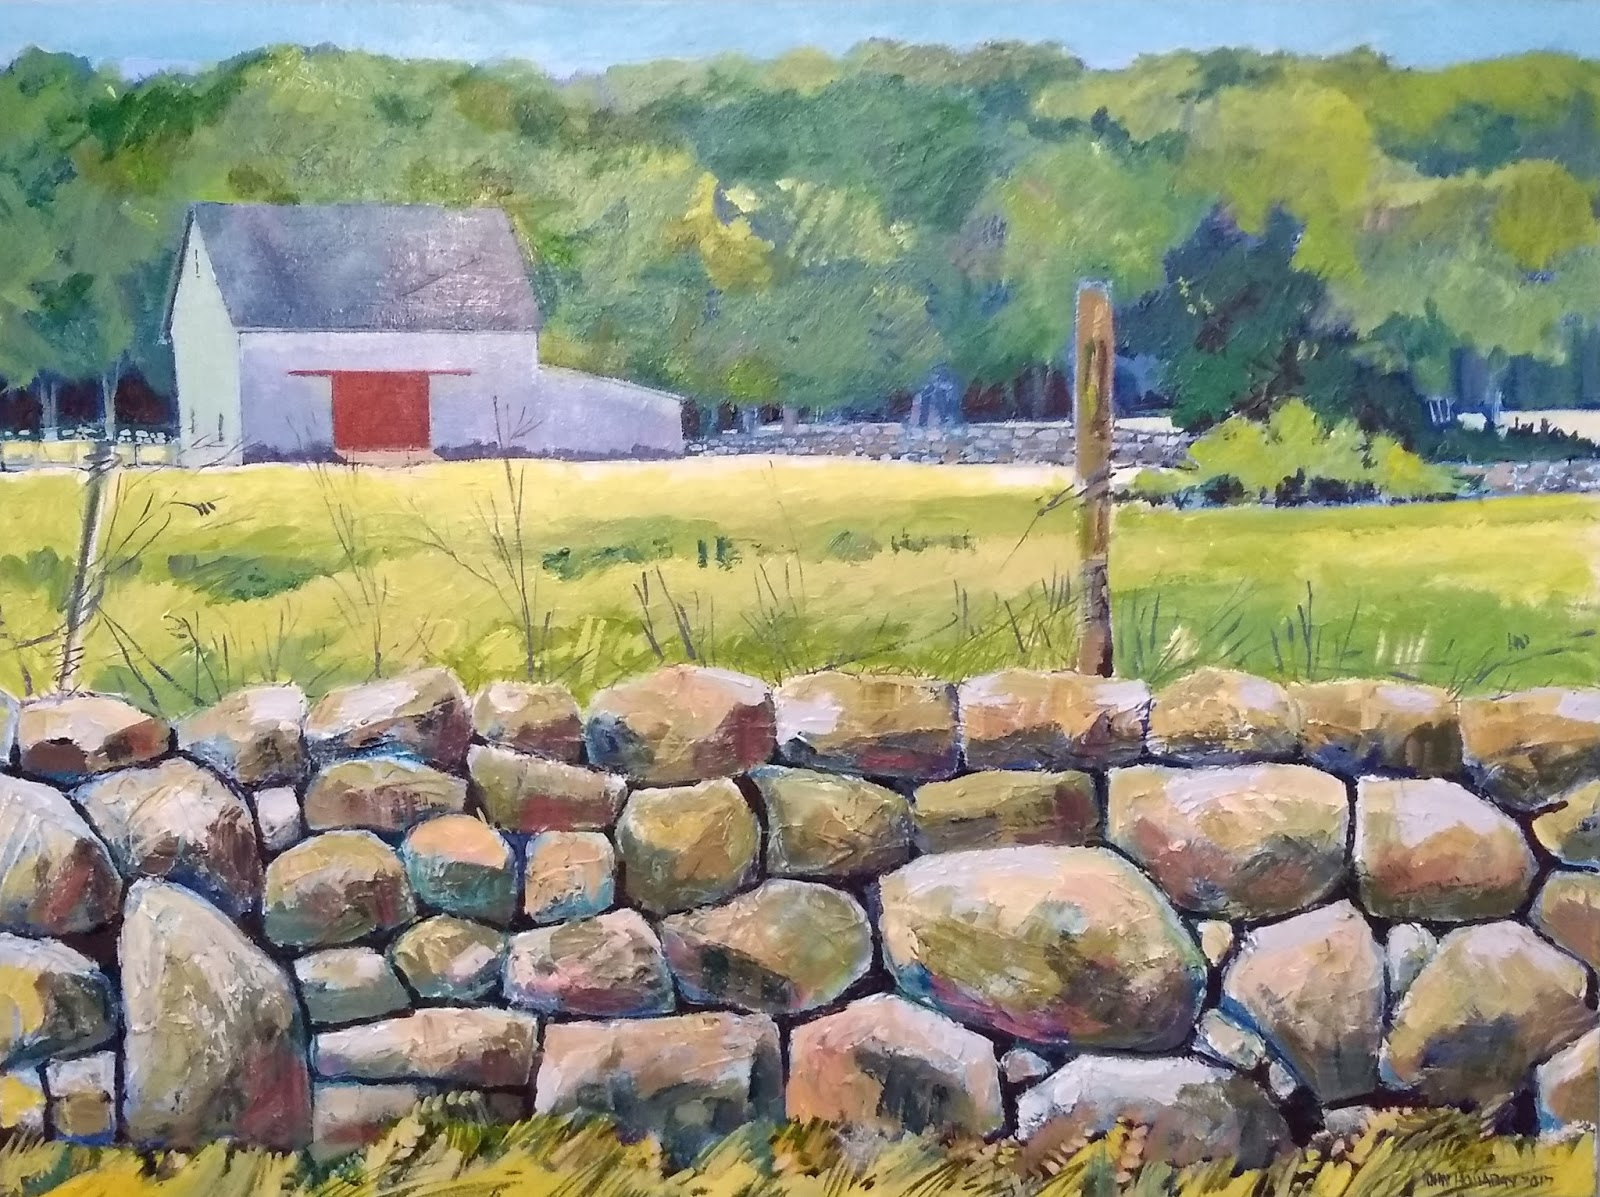 Vineyard Haven Public Library: Art in the Stacks: John Holladay